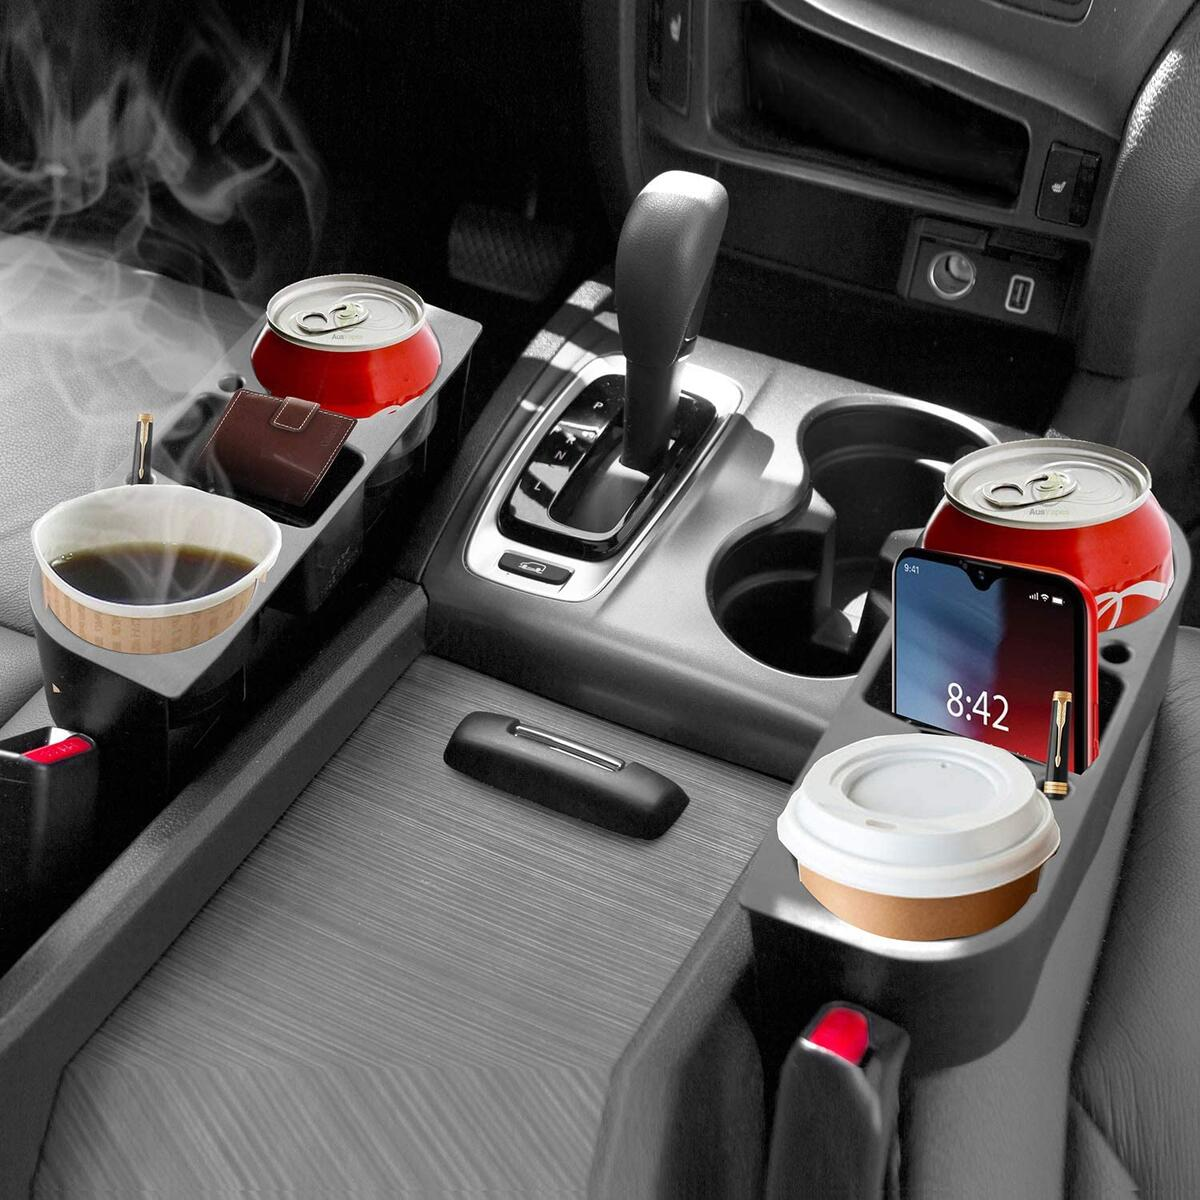 lebogner Between Car Seat Cup Holder Gap Filler, 2 Pack Side Of Center Console Drink Holder For Cups, Cans And Bottles, Multifunction Crevice Caddy Catcher With A Storage Organizer Area For Your Phone